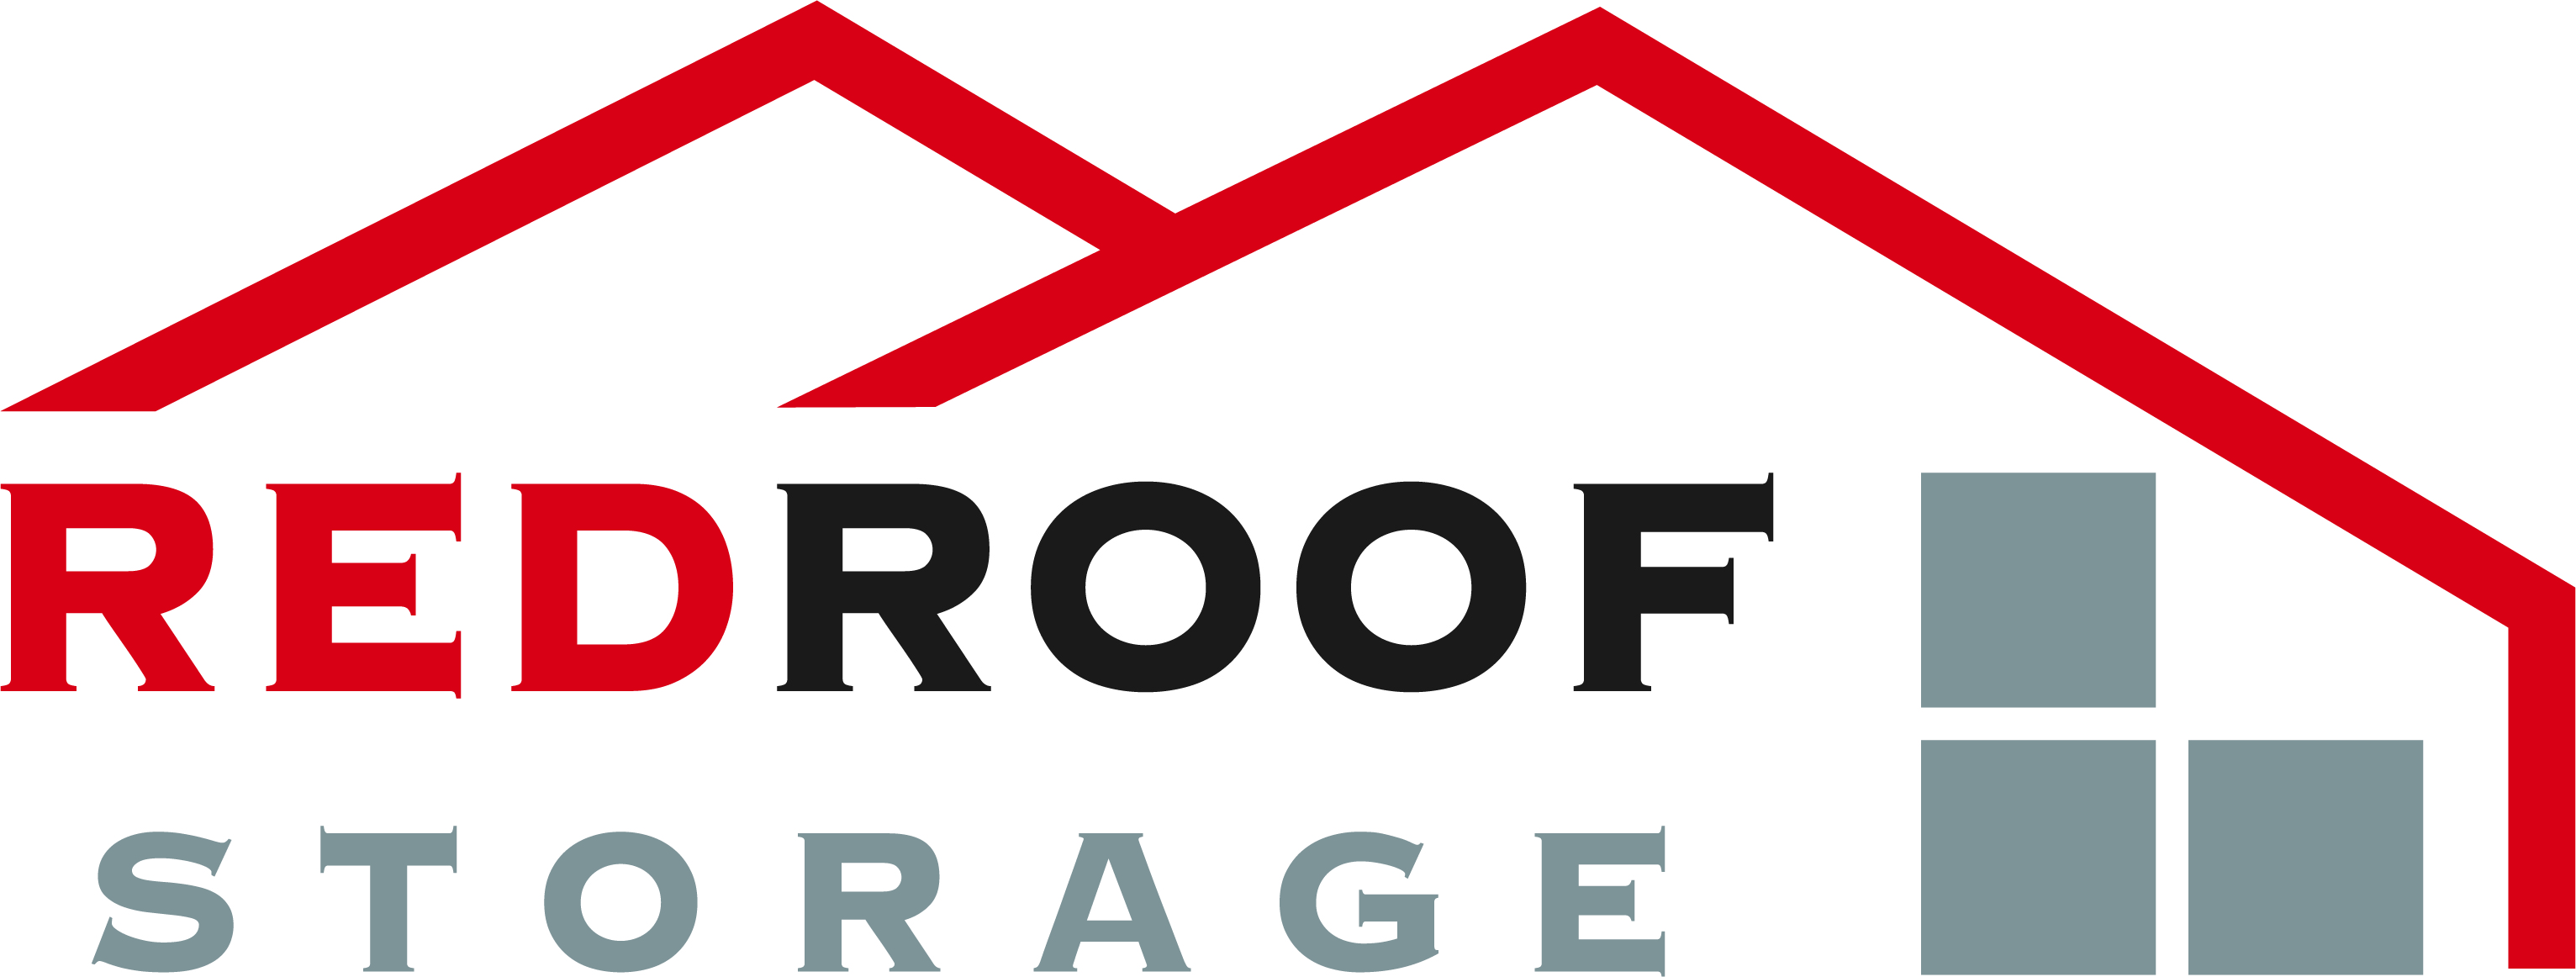 Red Roof Storage LLC